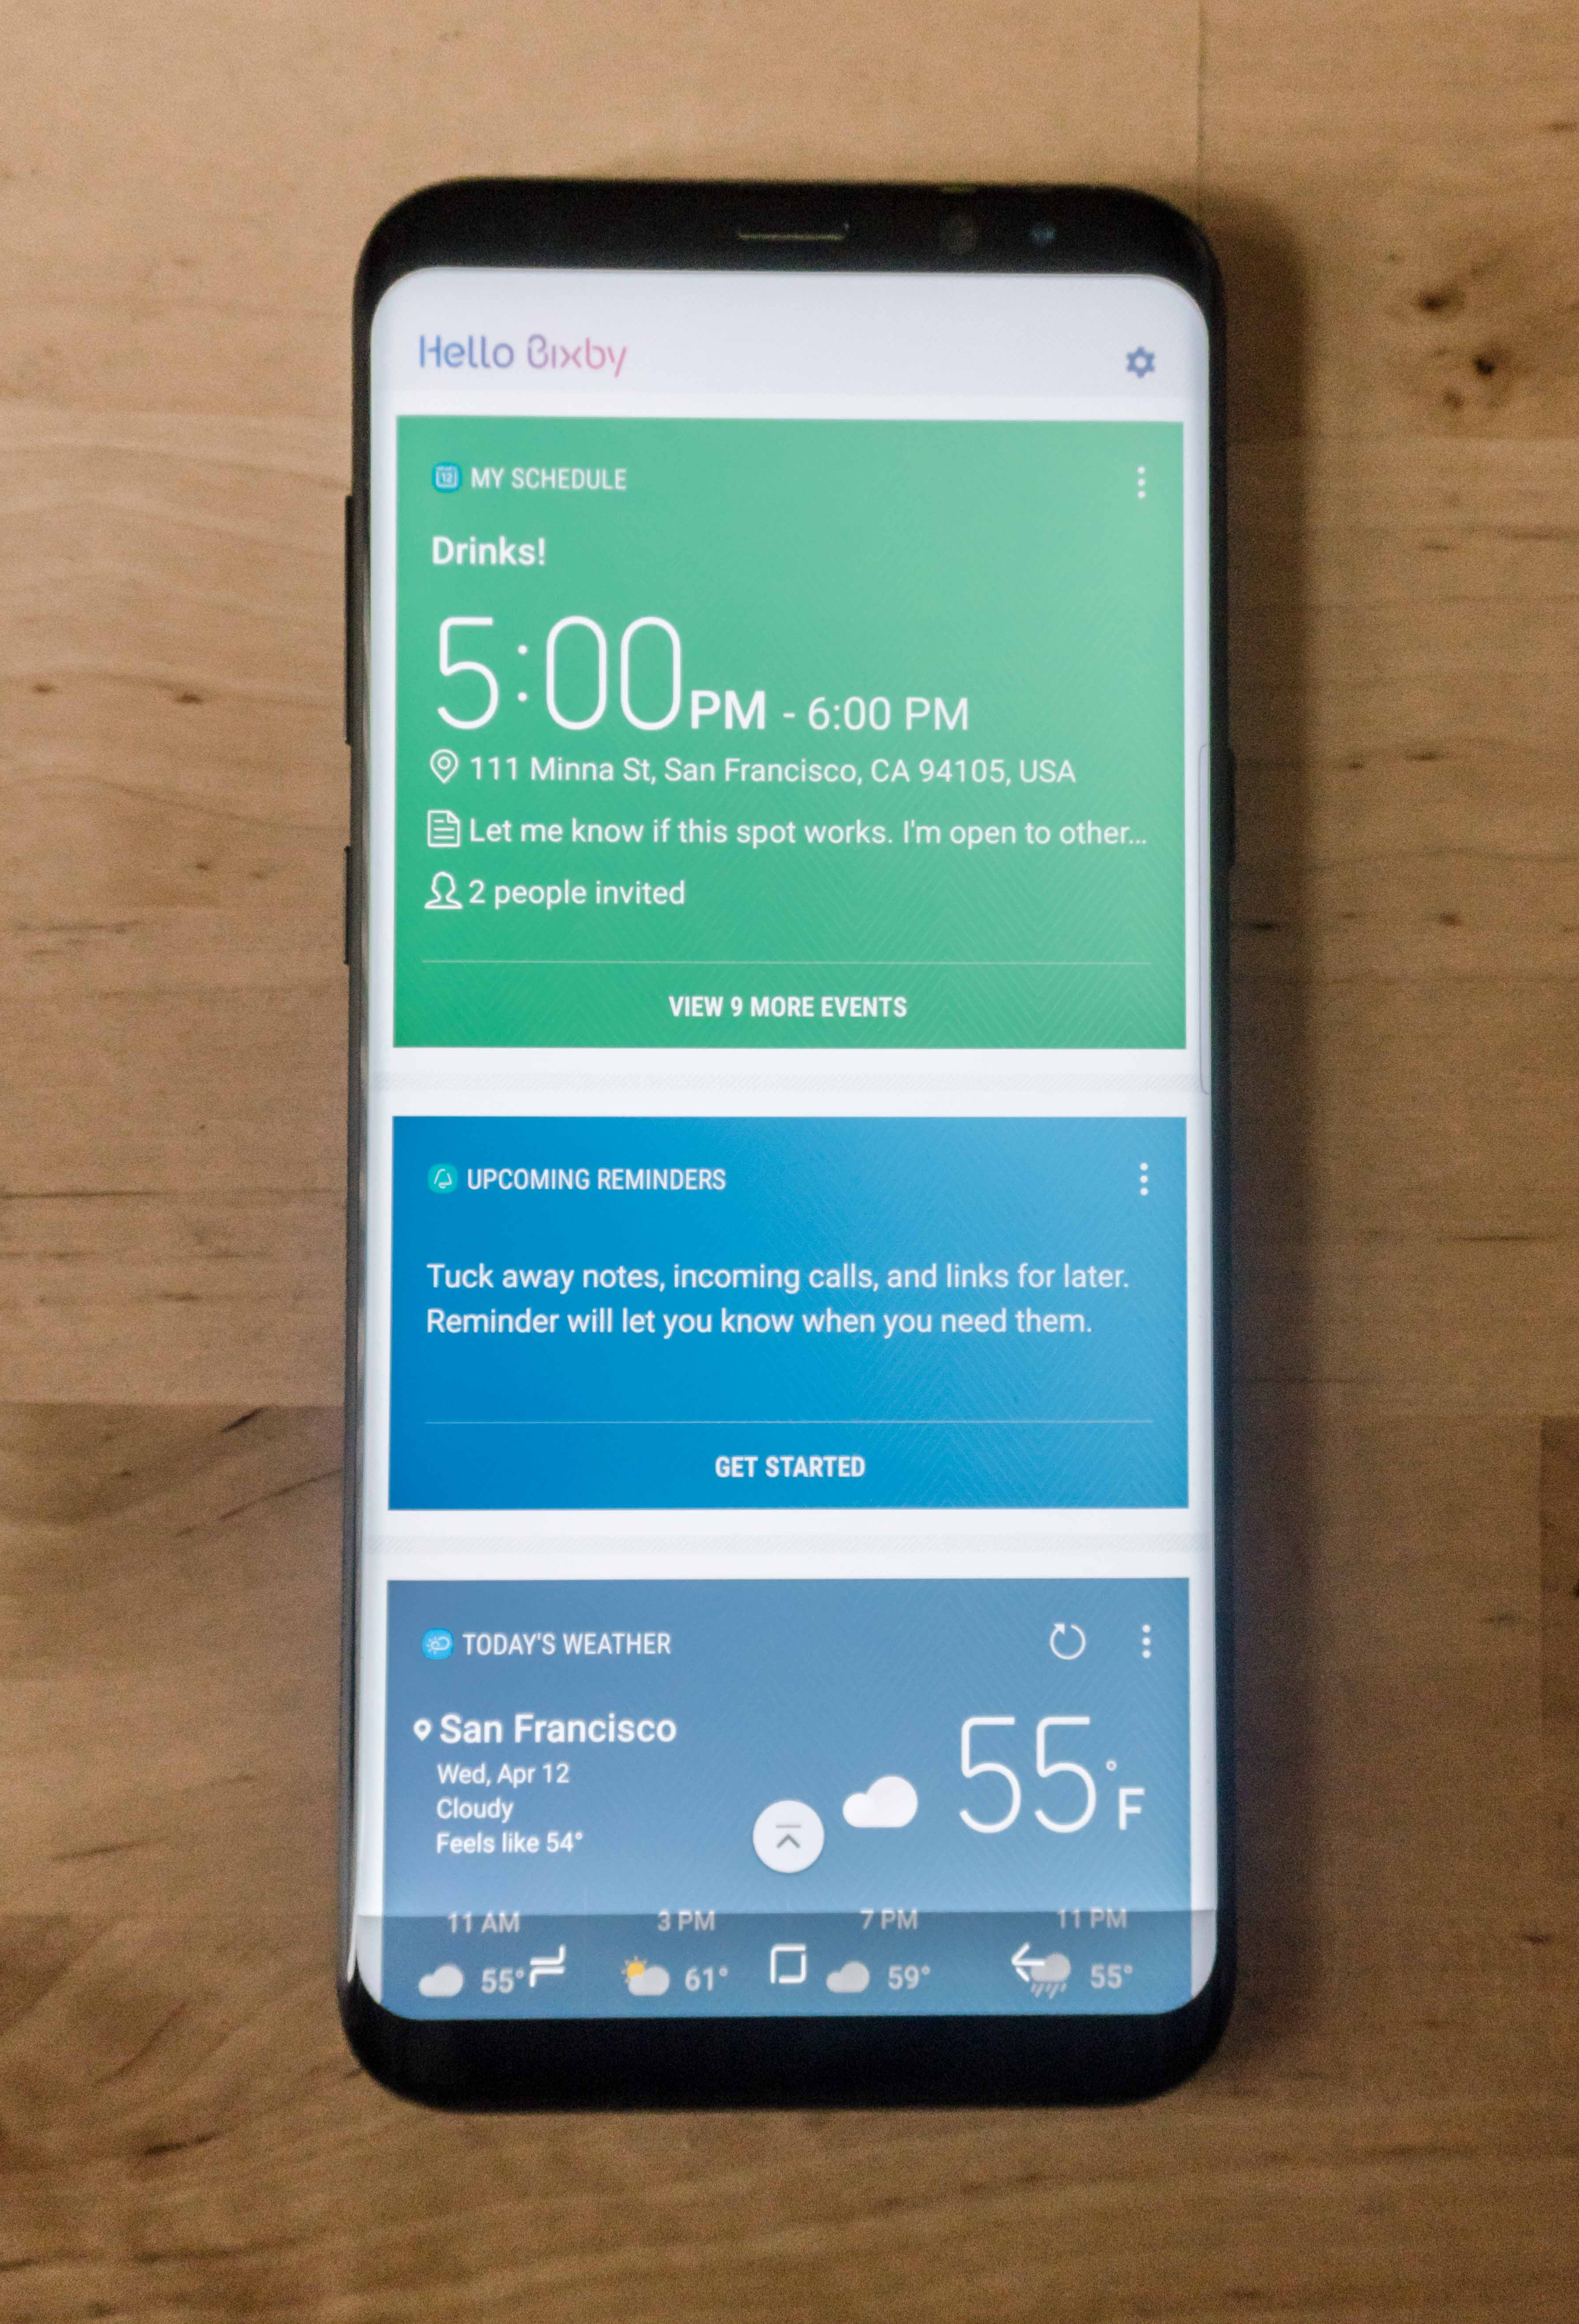 Samsung Galaxy S8 review: Design and performance impress, but Bixby